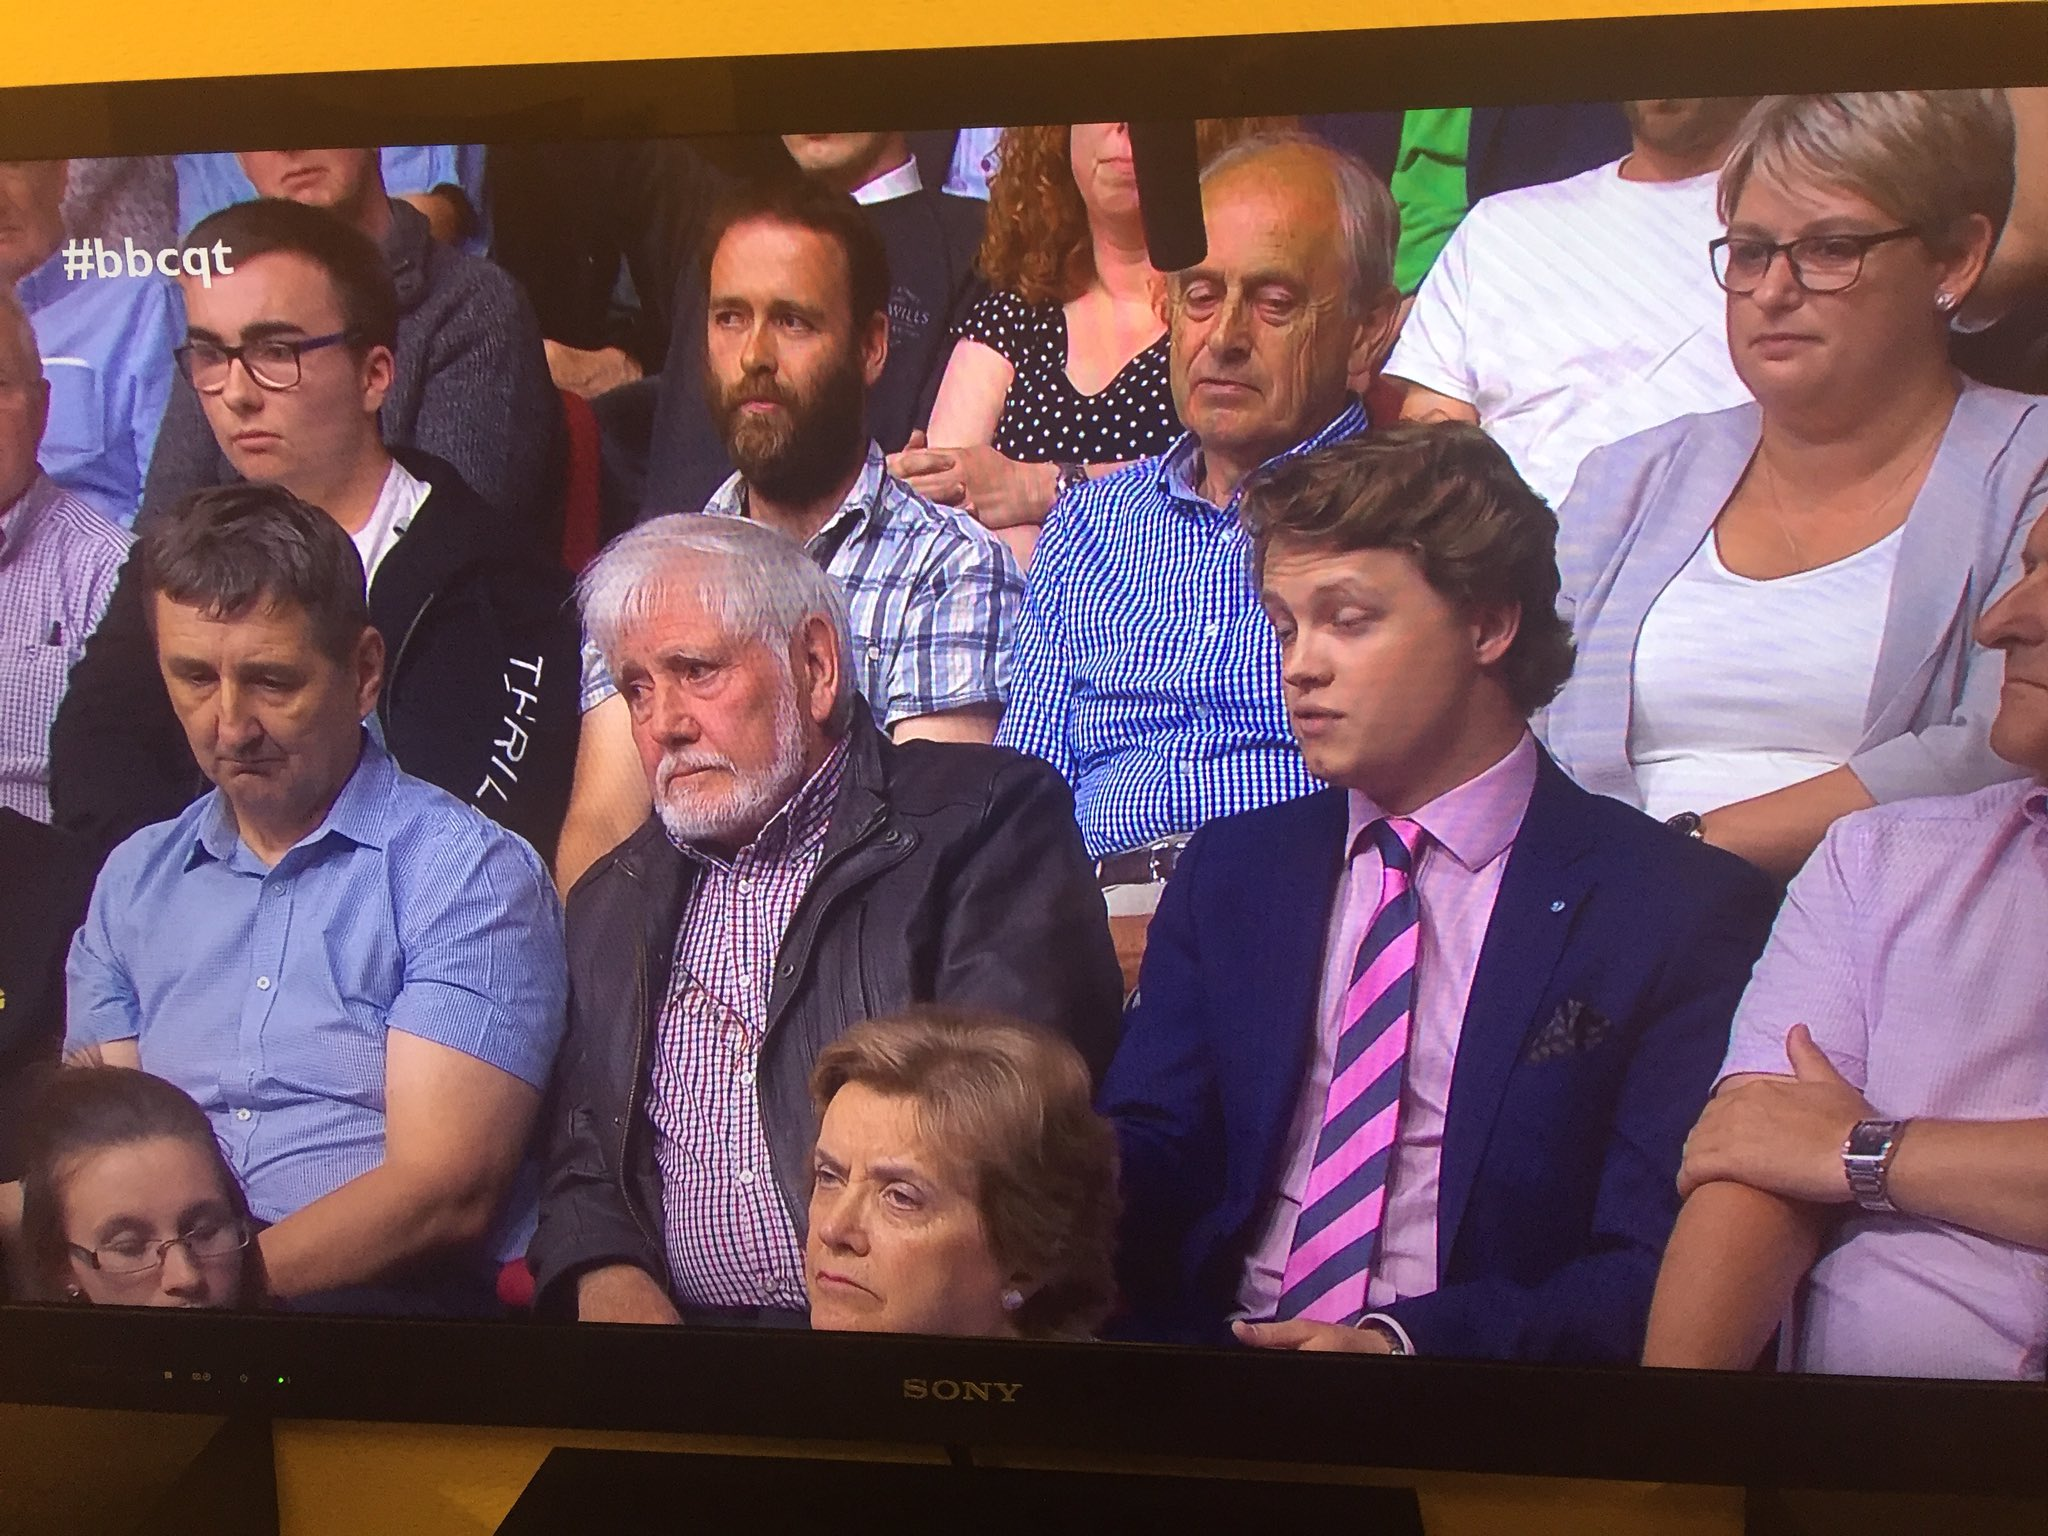 This game of 'Spot the Tory plant' is getting a bit too easy isn't it  #bbcqt https://t.co/K3RPwaOc2k